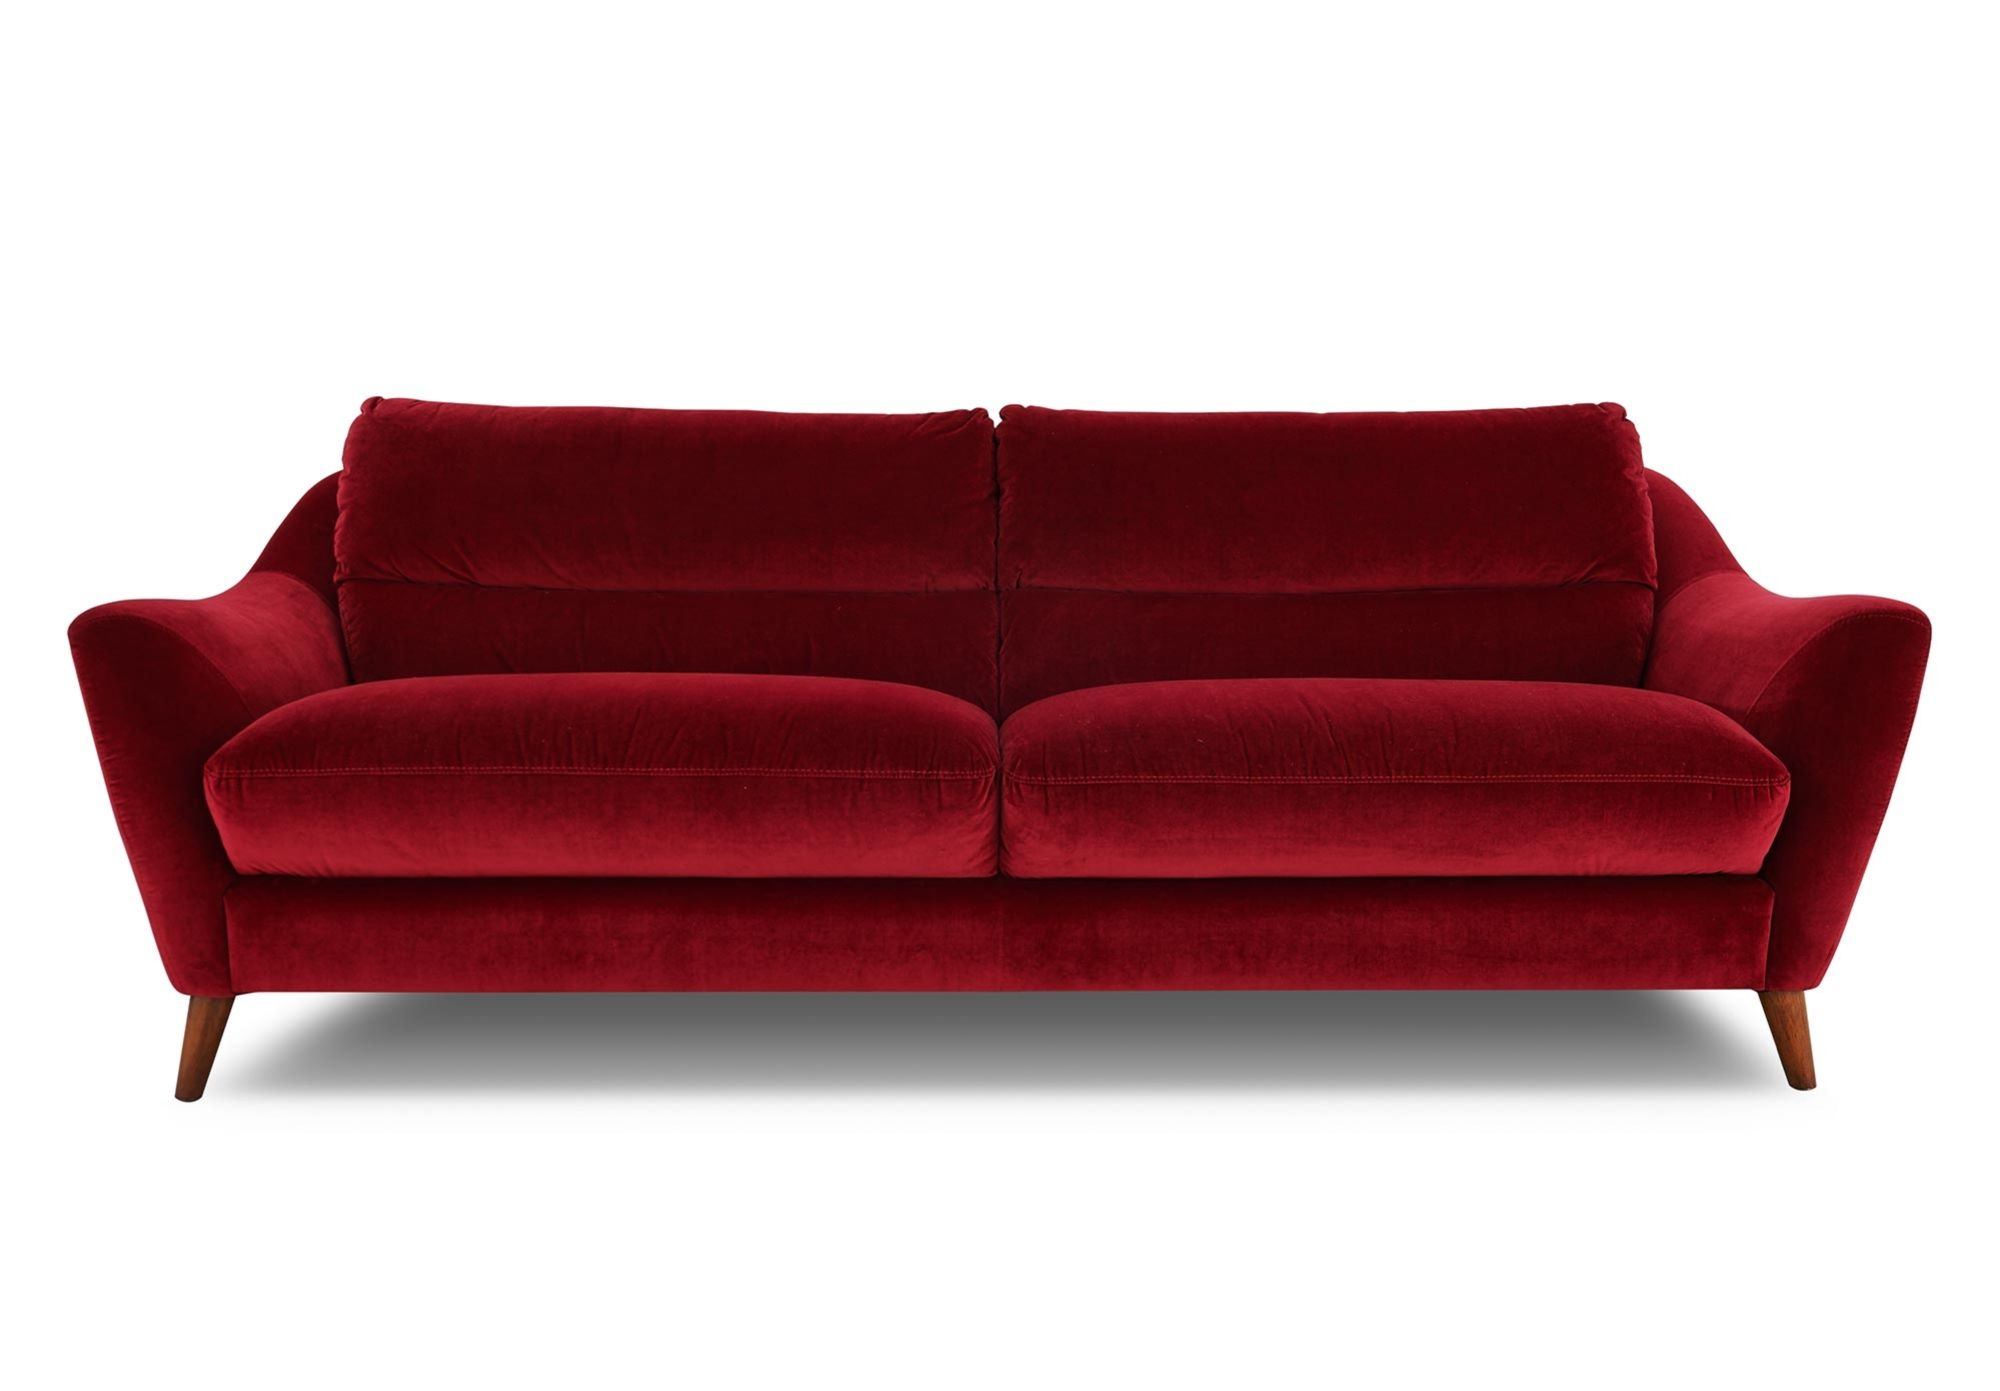 Premier Remy 3 Seater Fabric Sofa at Furniture Village Premier